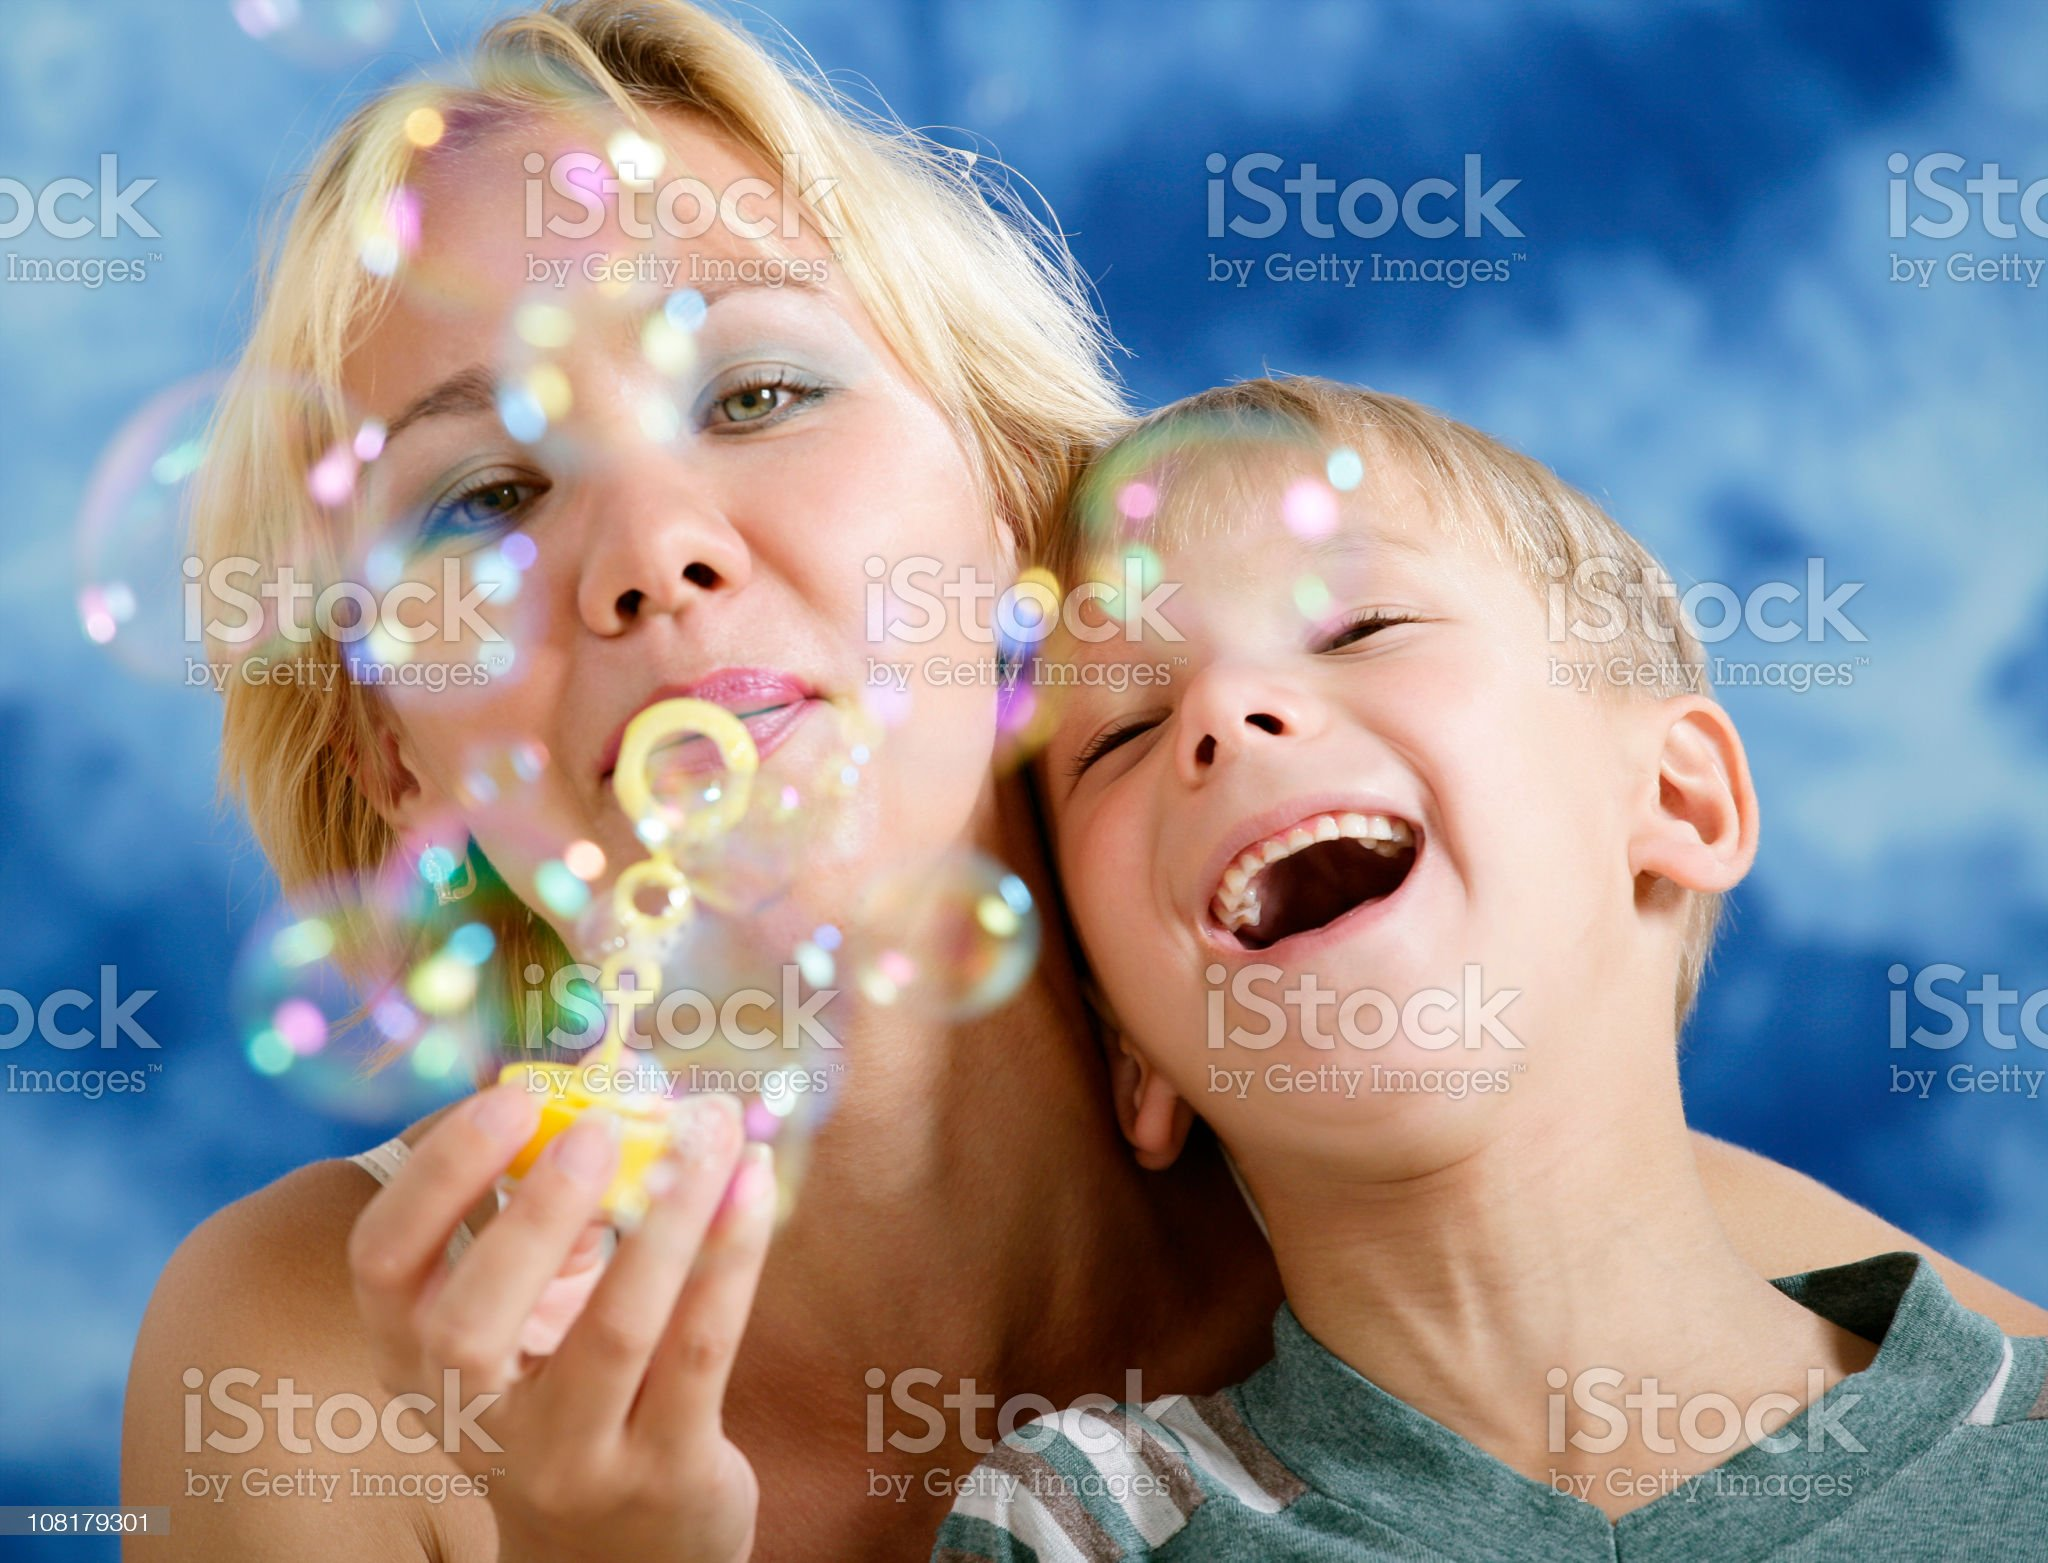 Blowing bubbles together royalty-free stock photo